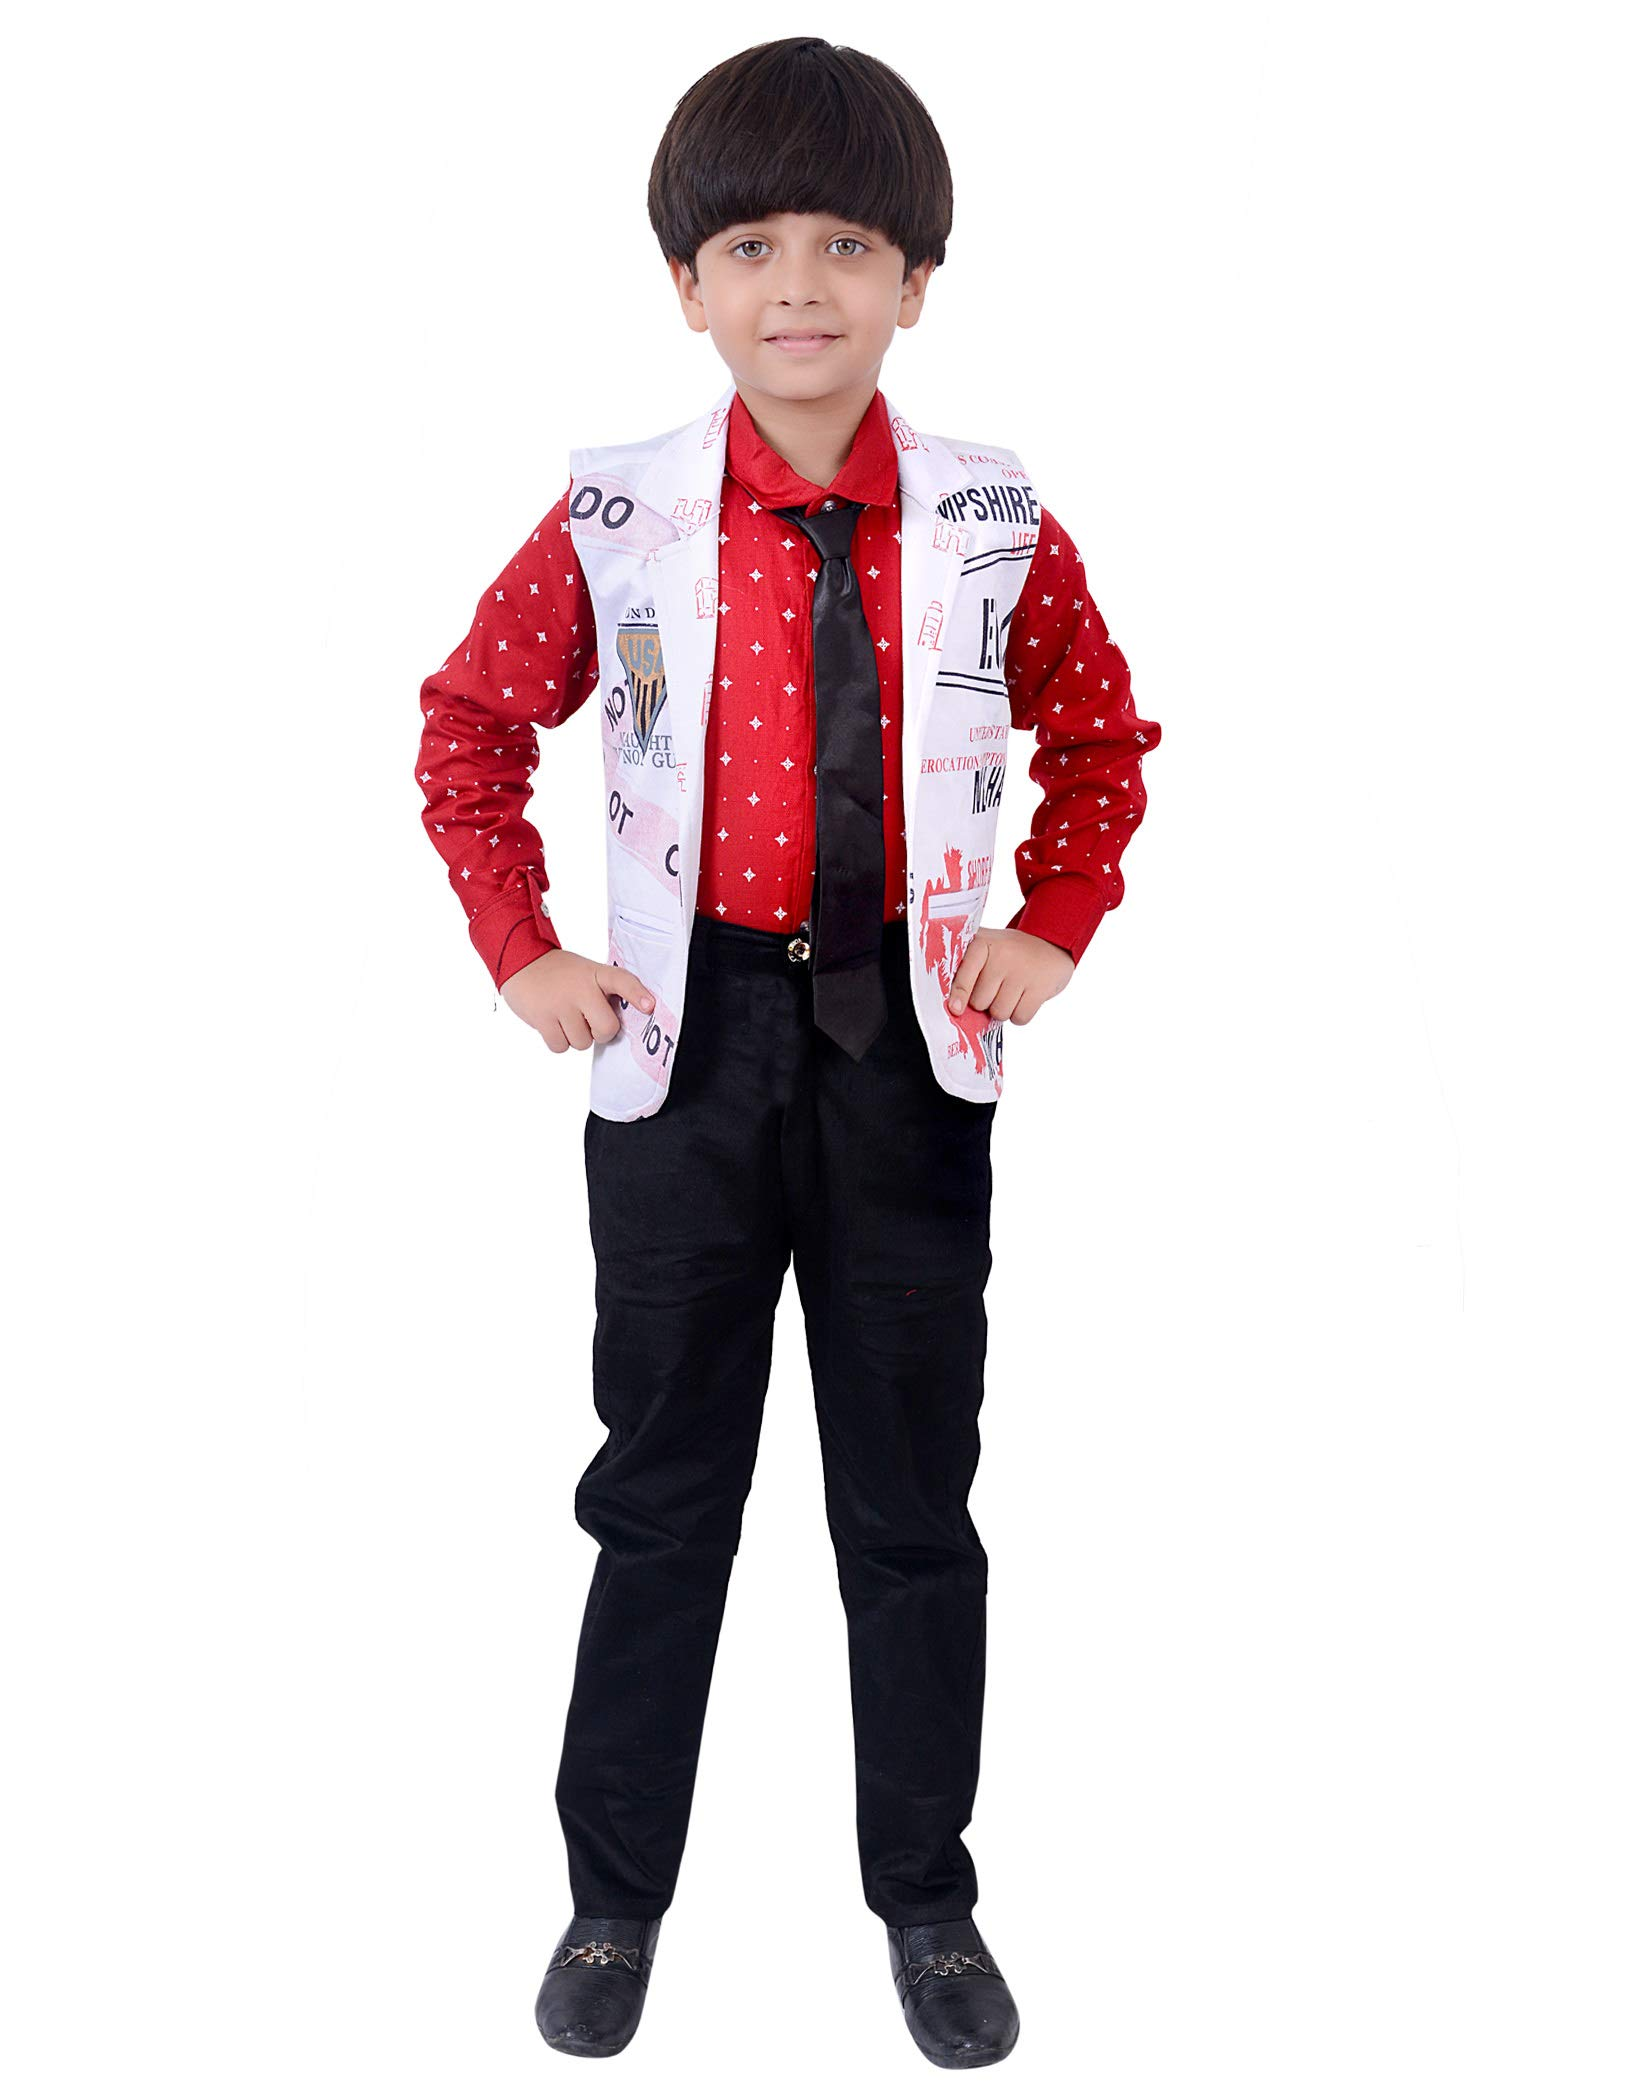 e1017540d Arshia Fashions Boys Shirt Waistcoat and Pant with Tie Set Party ...